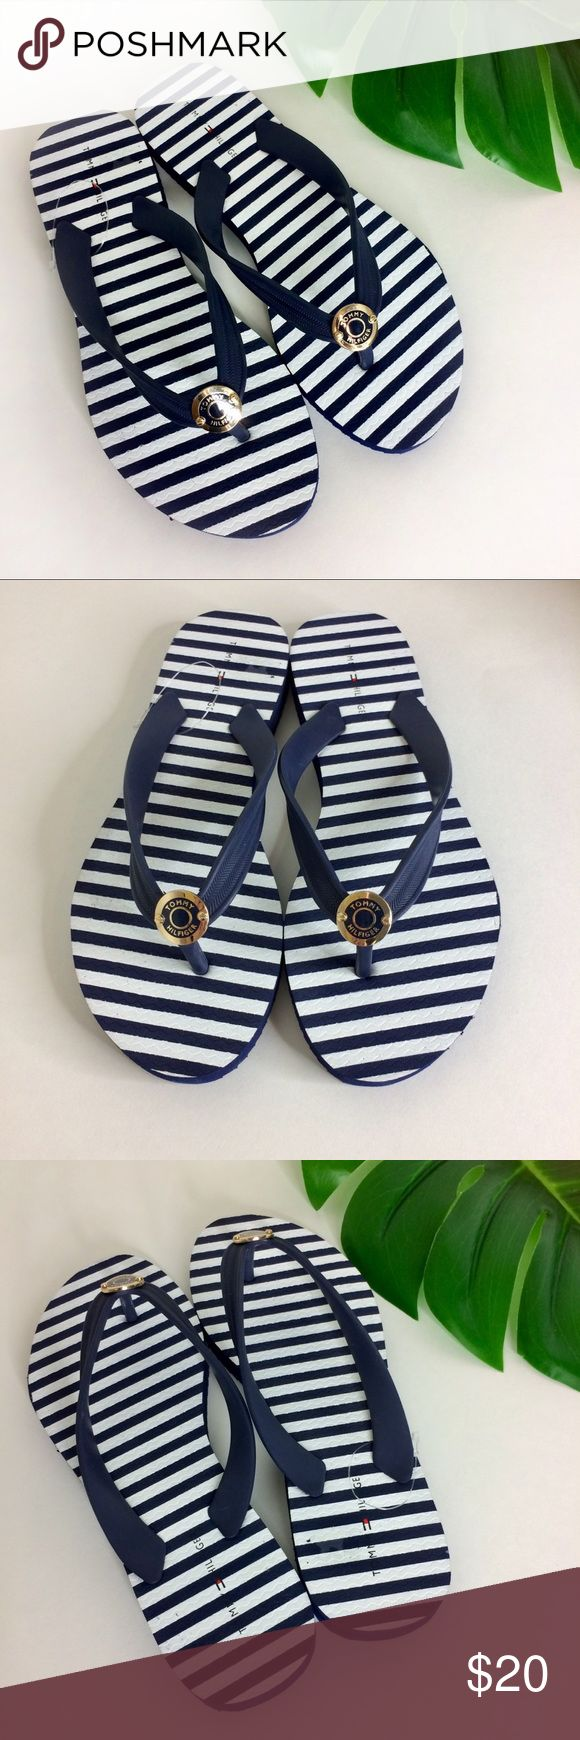 NWOT Tommy Hilfiger Striped Nautical Flip Flops 8 New without tags striped nautical flip-flops, women's size 8. These adorable flip flops shout spring/summer and are perfect for vacationing, shopping trips with the girlfriends and wearing beach-side. Pair these flip flops with Bermuda shorts and a flowey, white peasant blouse for a great daytime look. Pairs great with gold jewelry as well. Made in China/Man-made material/Smoke and pet-free home. Tommy Hilfiger Shoes Sandals